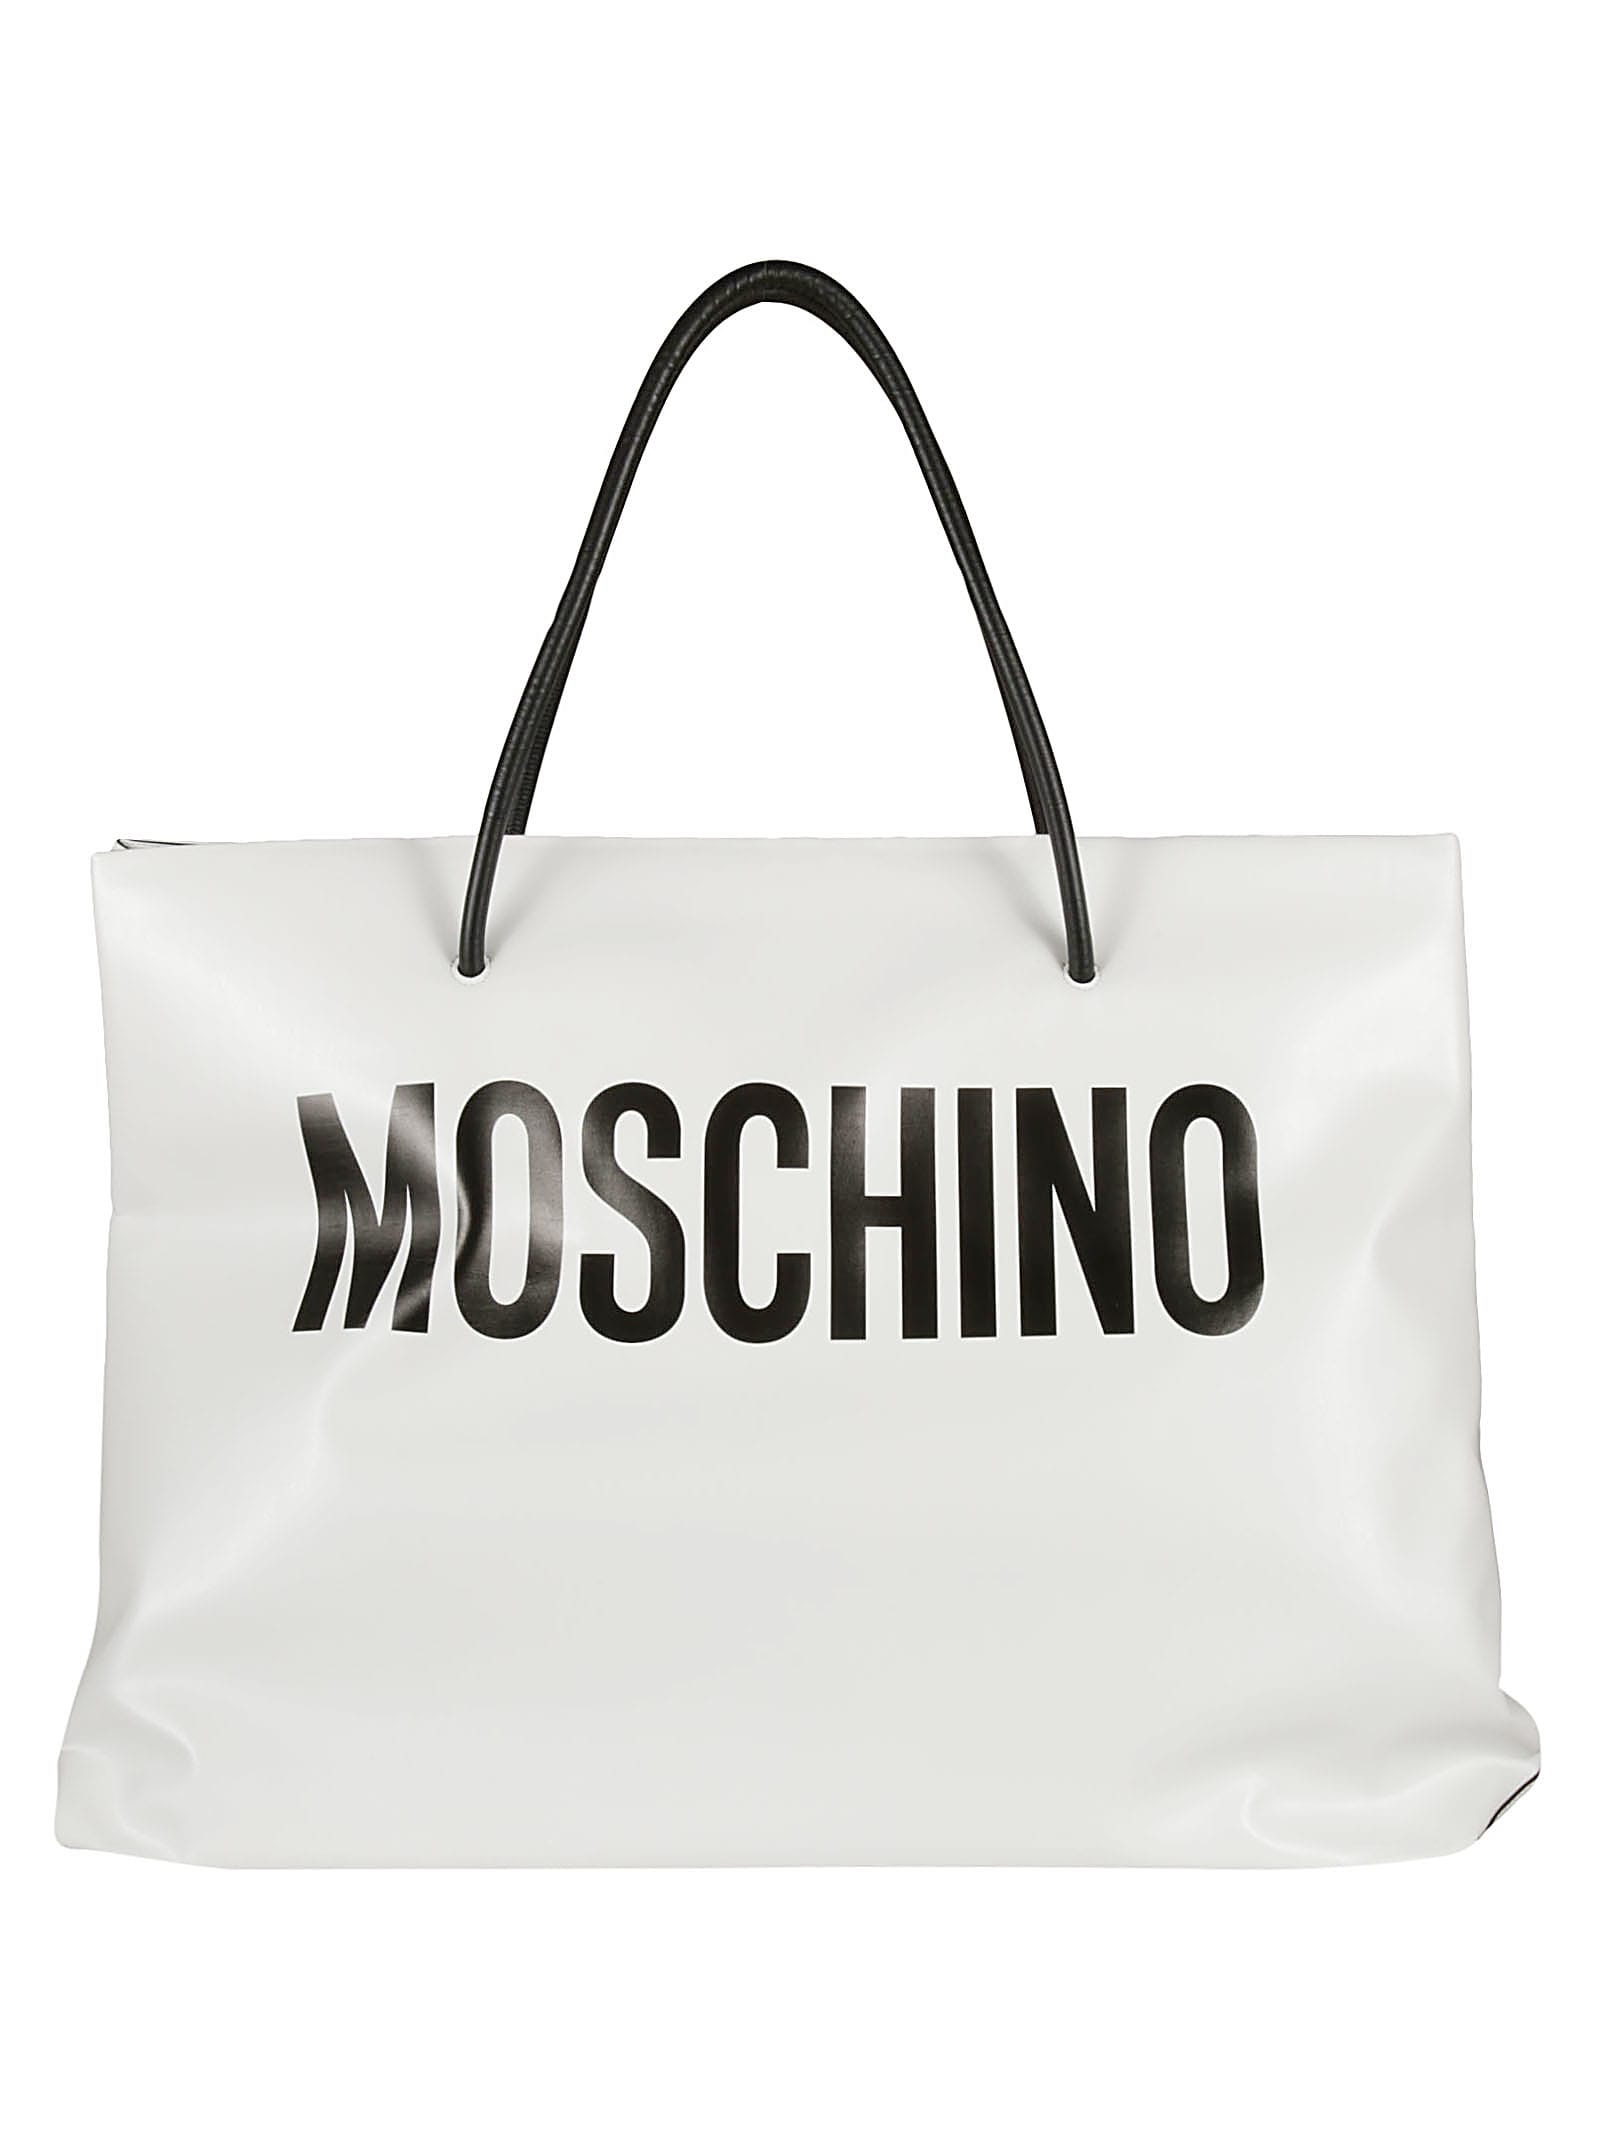 Moschino LOGO PRINT SHOPPER BAG